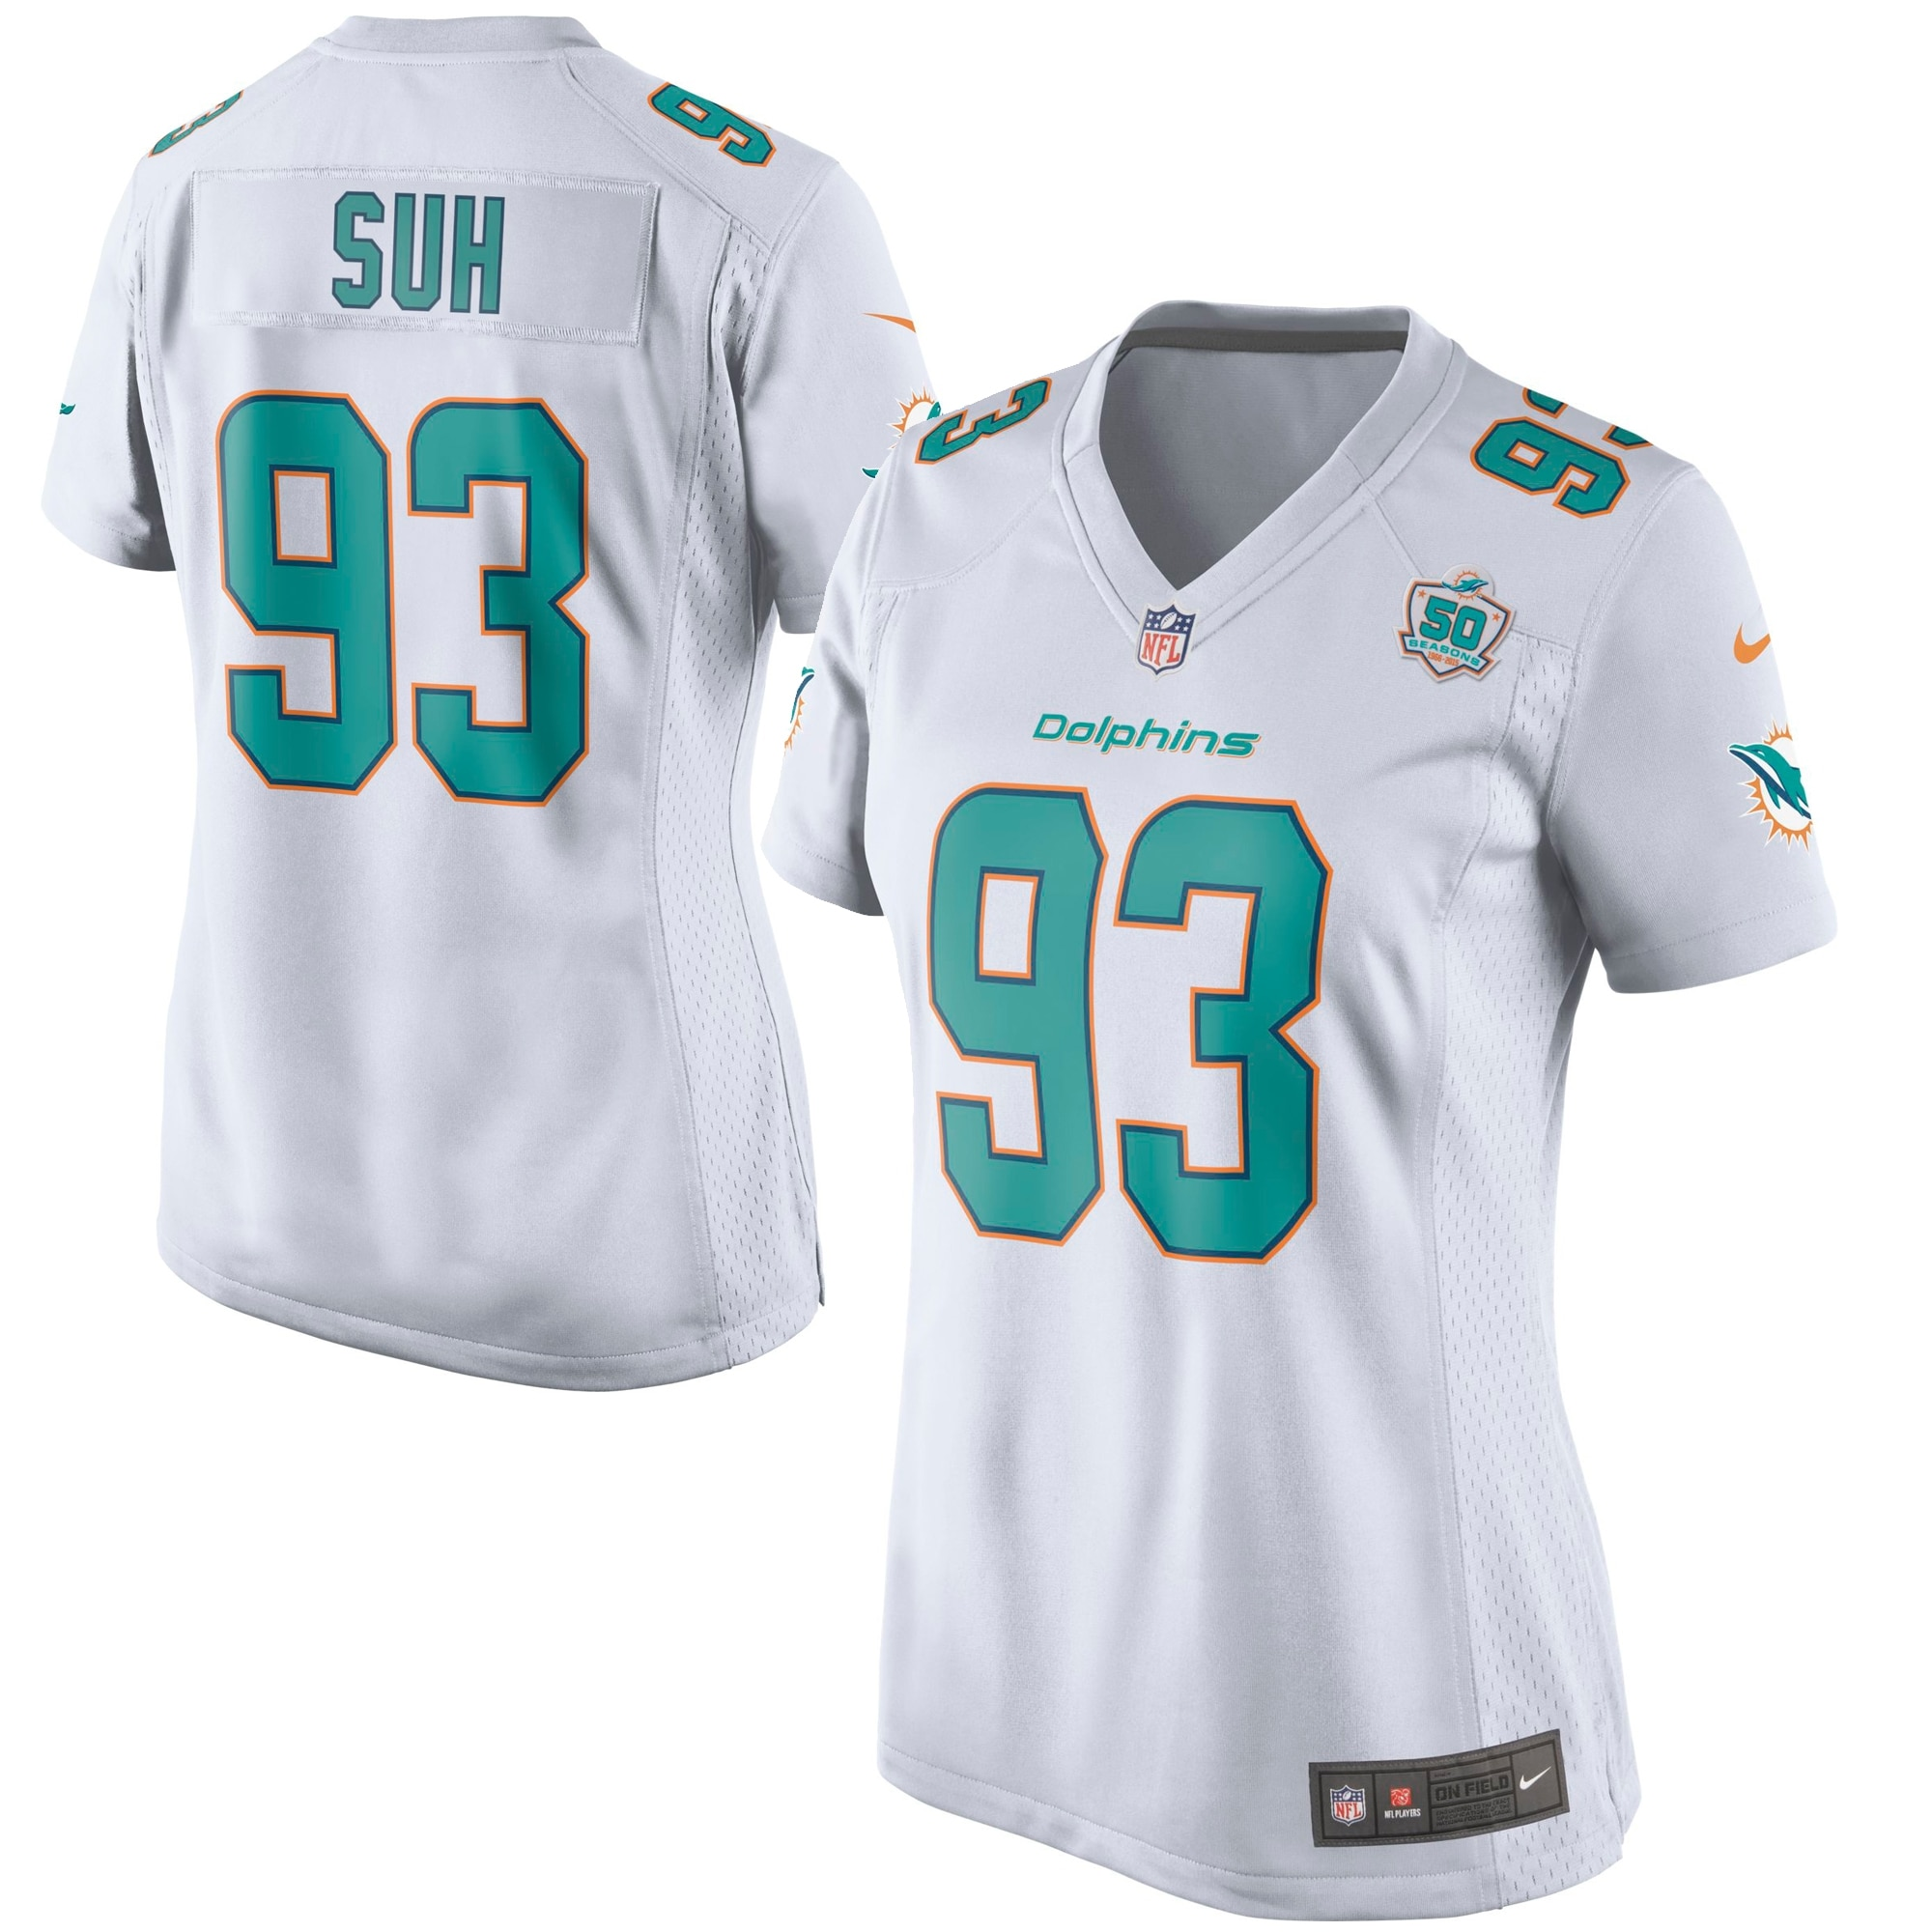 Ndamukong Suh Miami Dolphins Nike Women's White Game 2015 NFL Patch Jersey - White